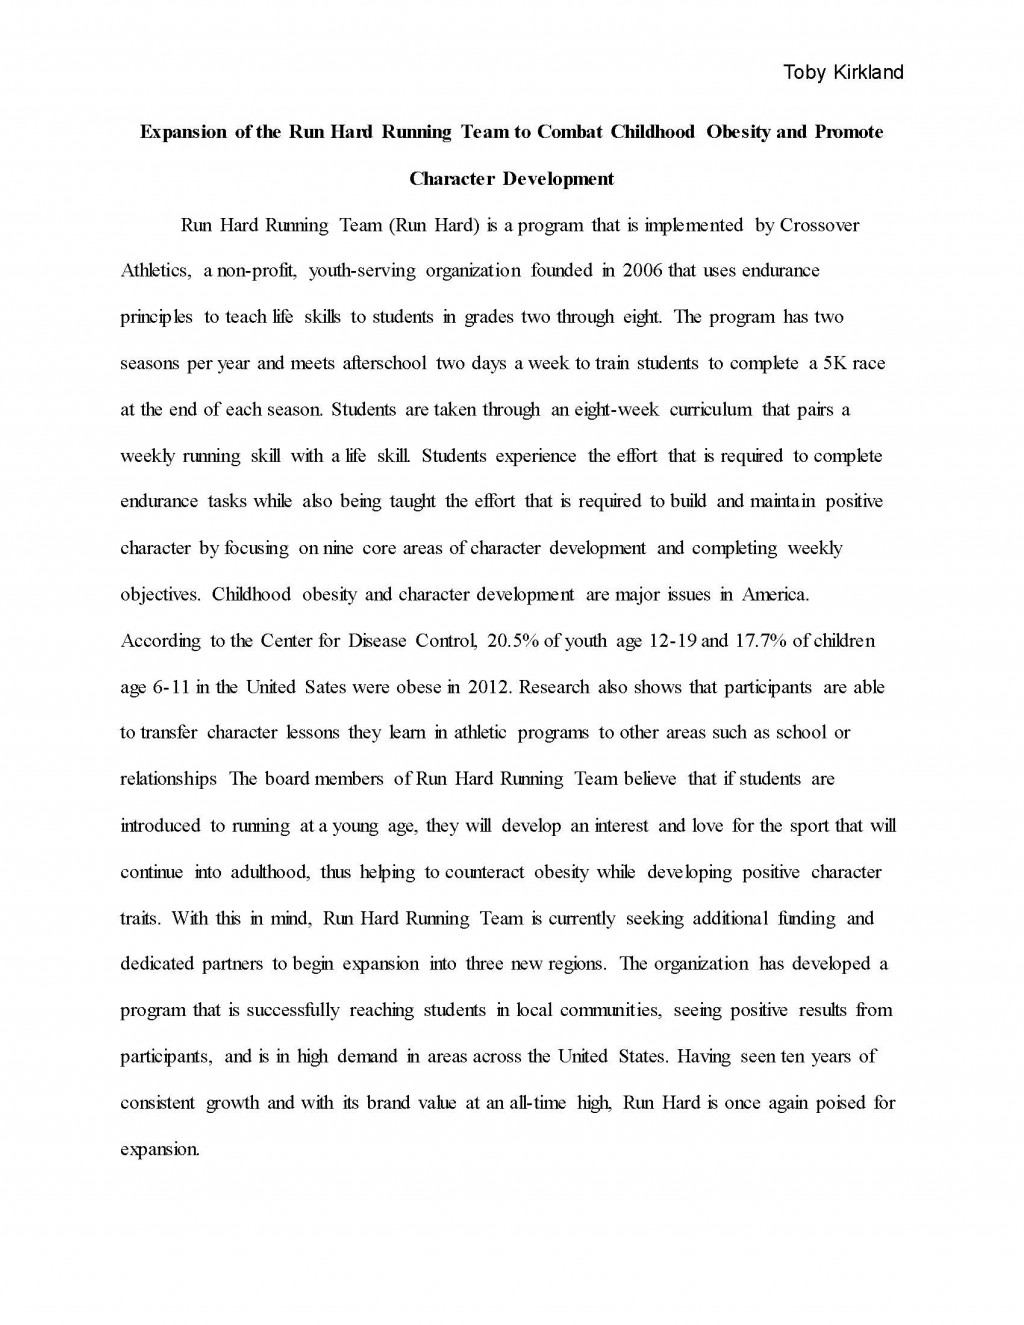 002 Toby Kirkland Final Grant Proposal Page 01 Childhood Obesity Research Rare Paper Outline Pdf Large